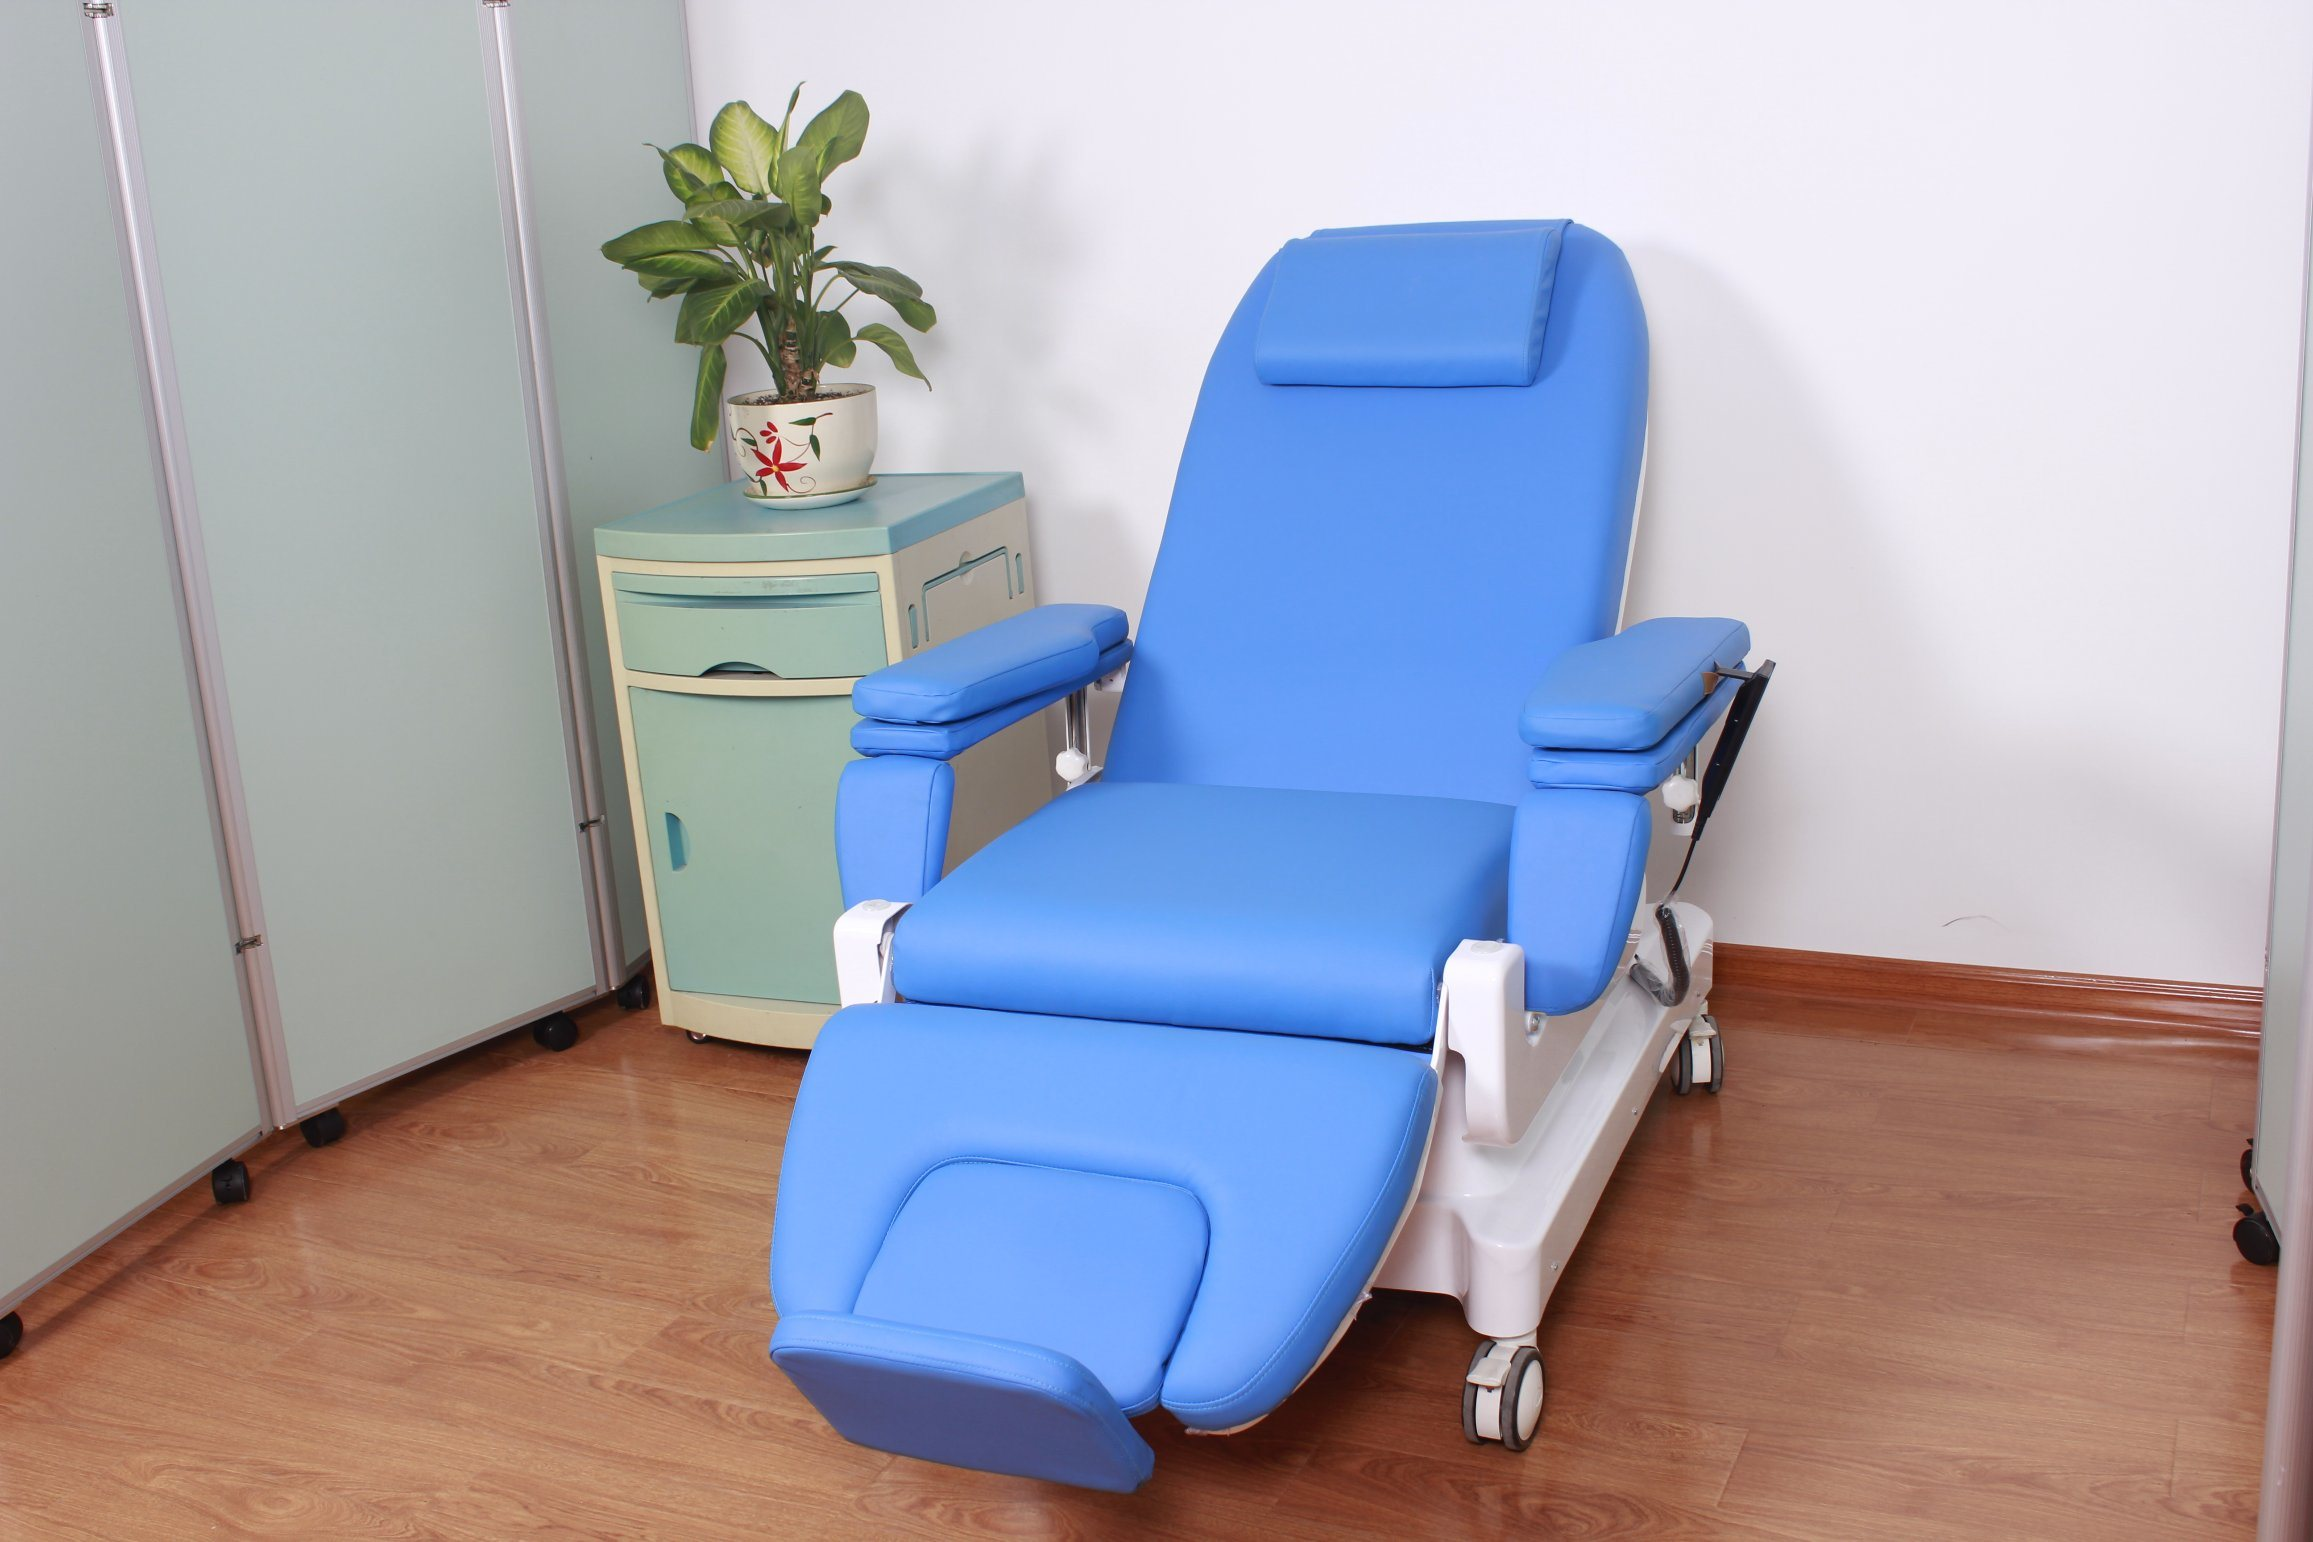 of position multifunctional chair pura the for dialysis access